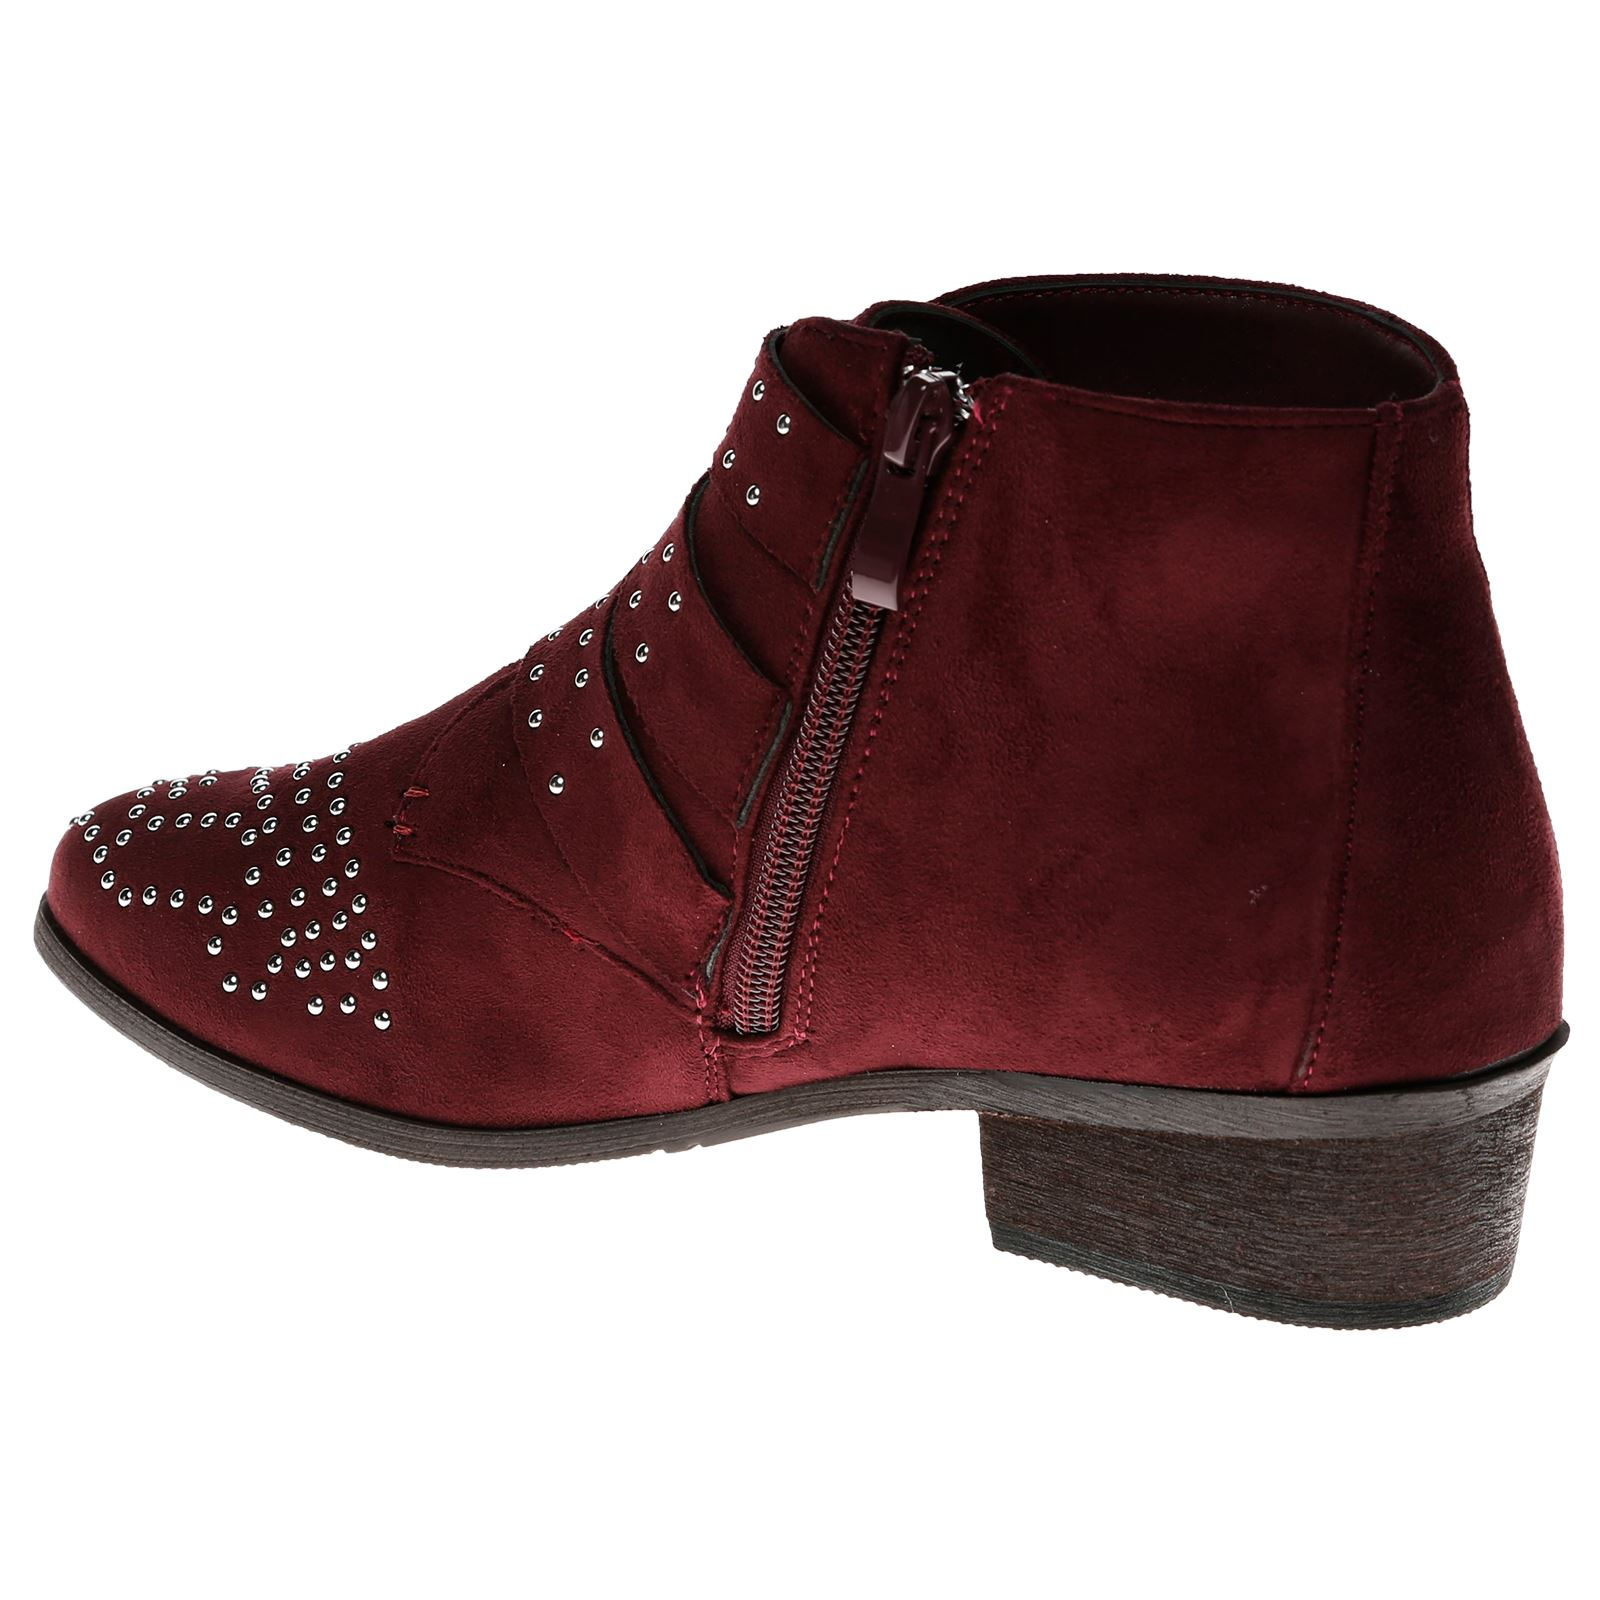 Liv-Womens-Flats-Low-Heels-Buckle-Strappy-Biker-Ankle-Boots-Ladies-Shoes-Studded thumbnail 33